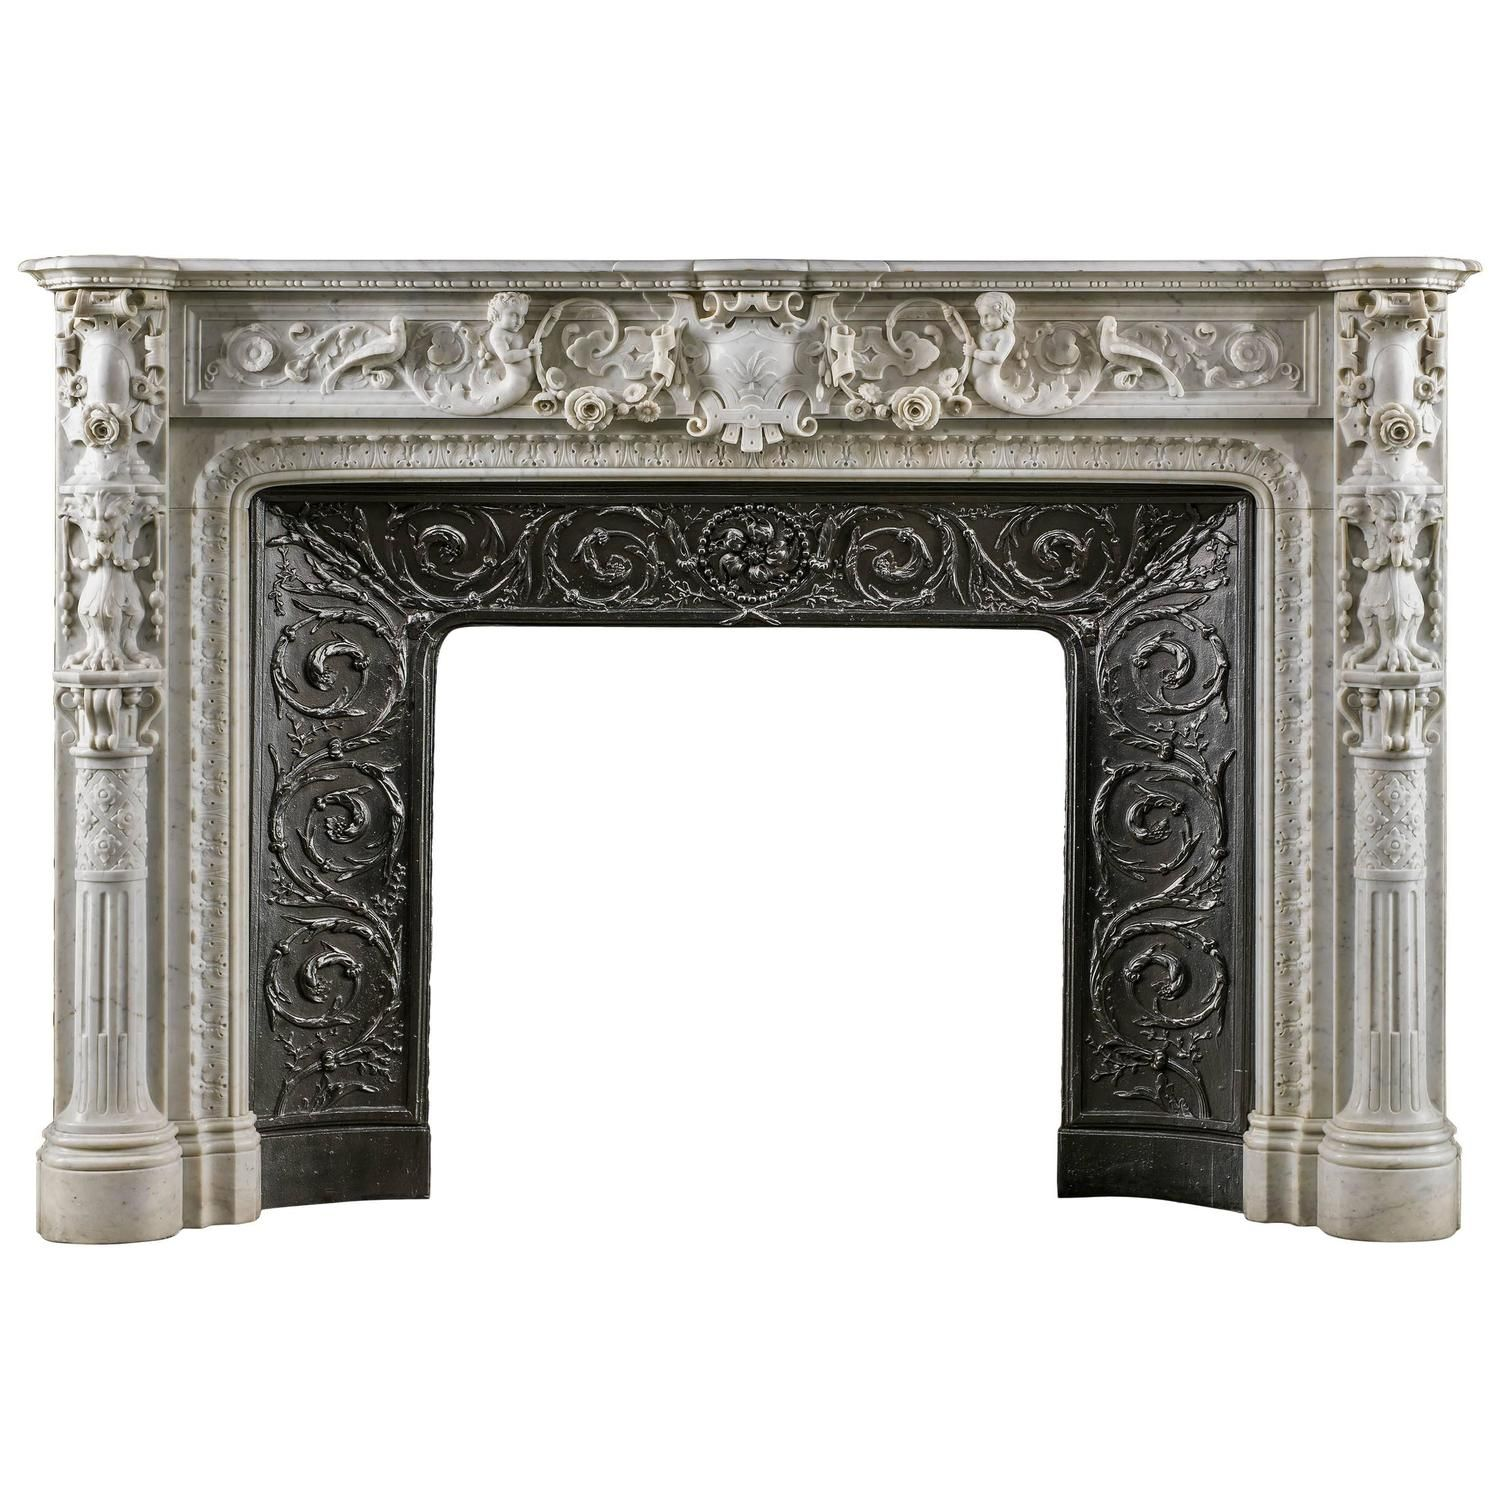 antique marble fireplace mantels. Small Italian Renaissance Style Antique Marble Fireplace Mantel